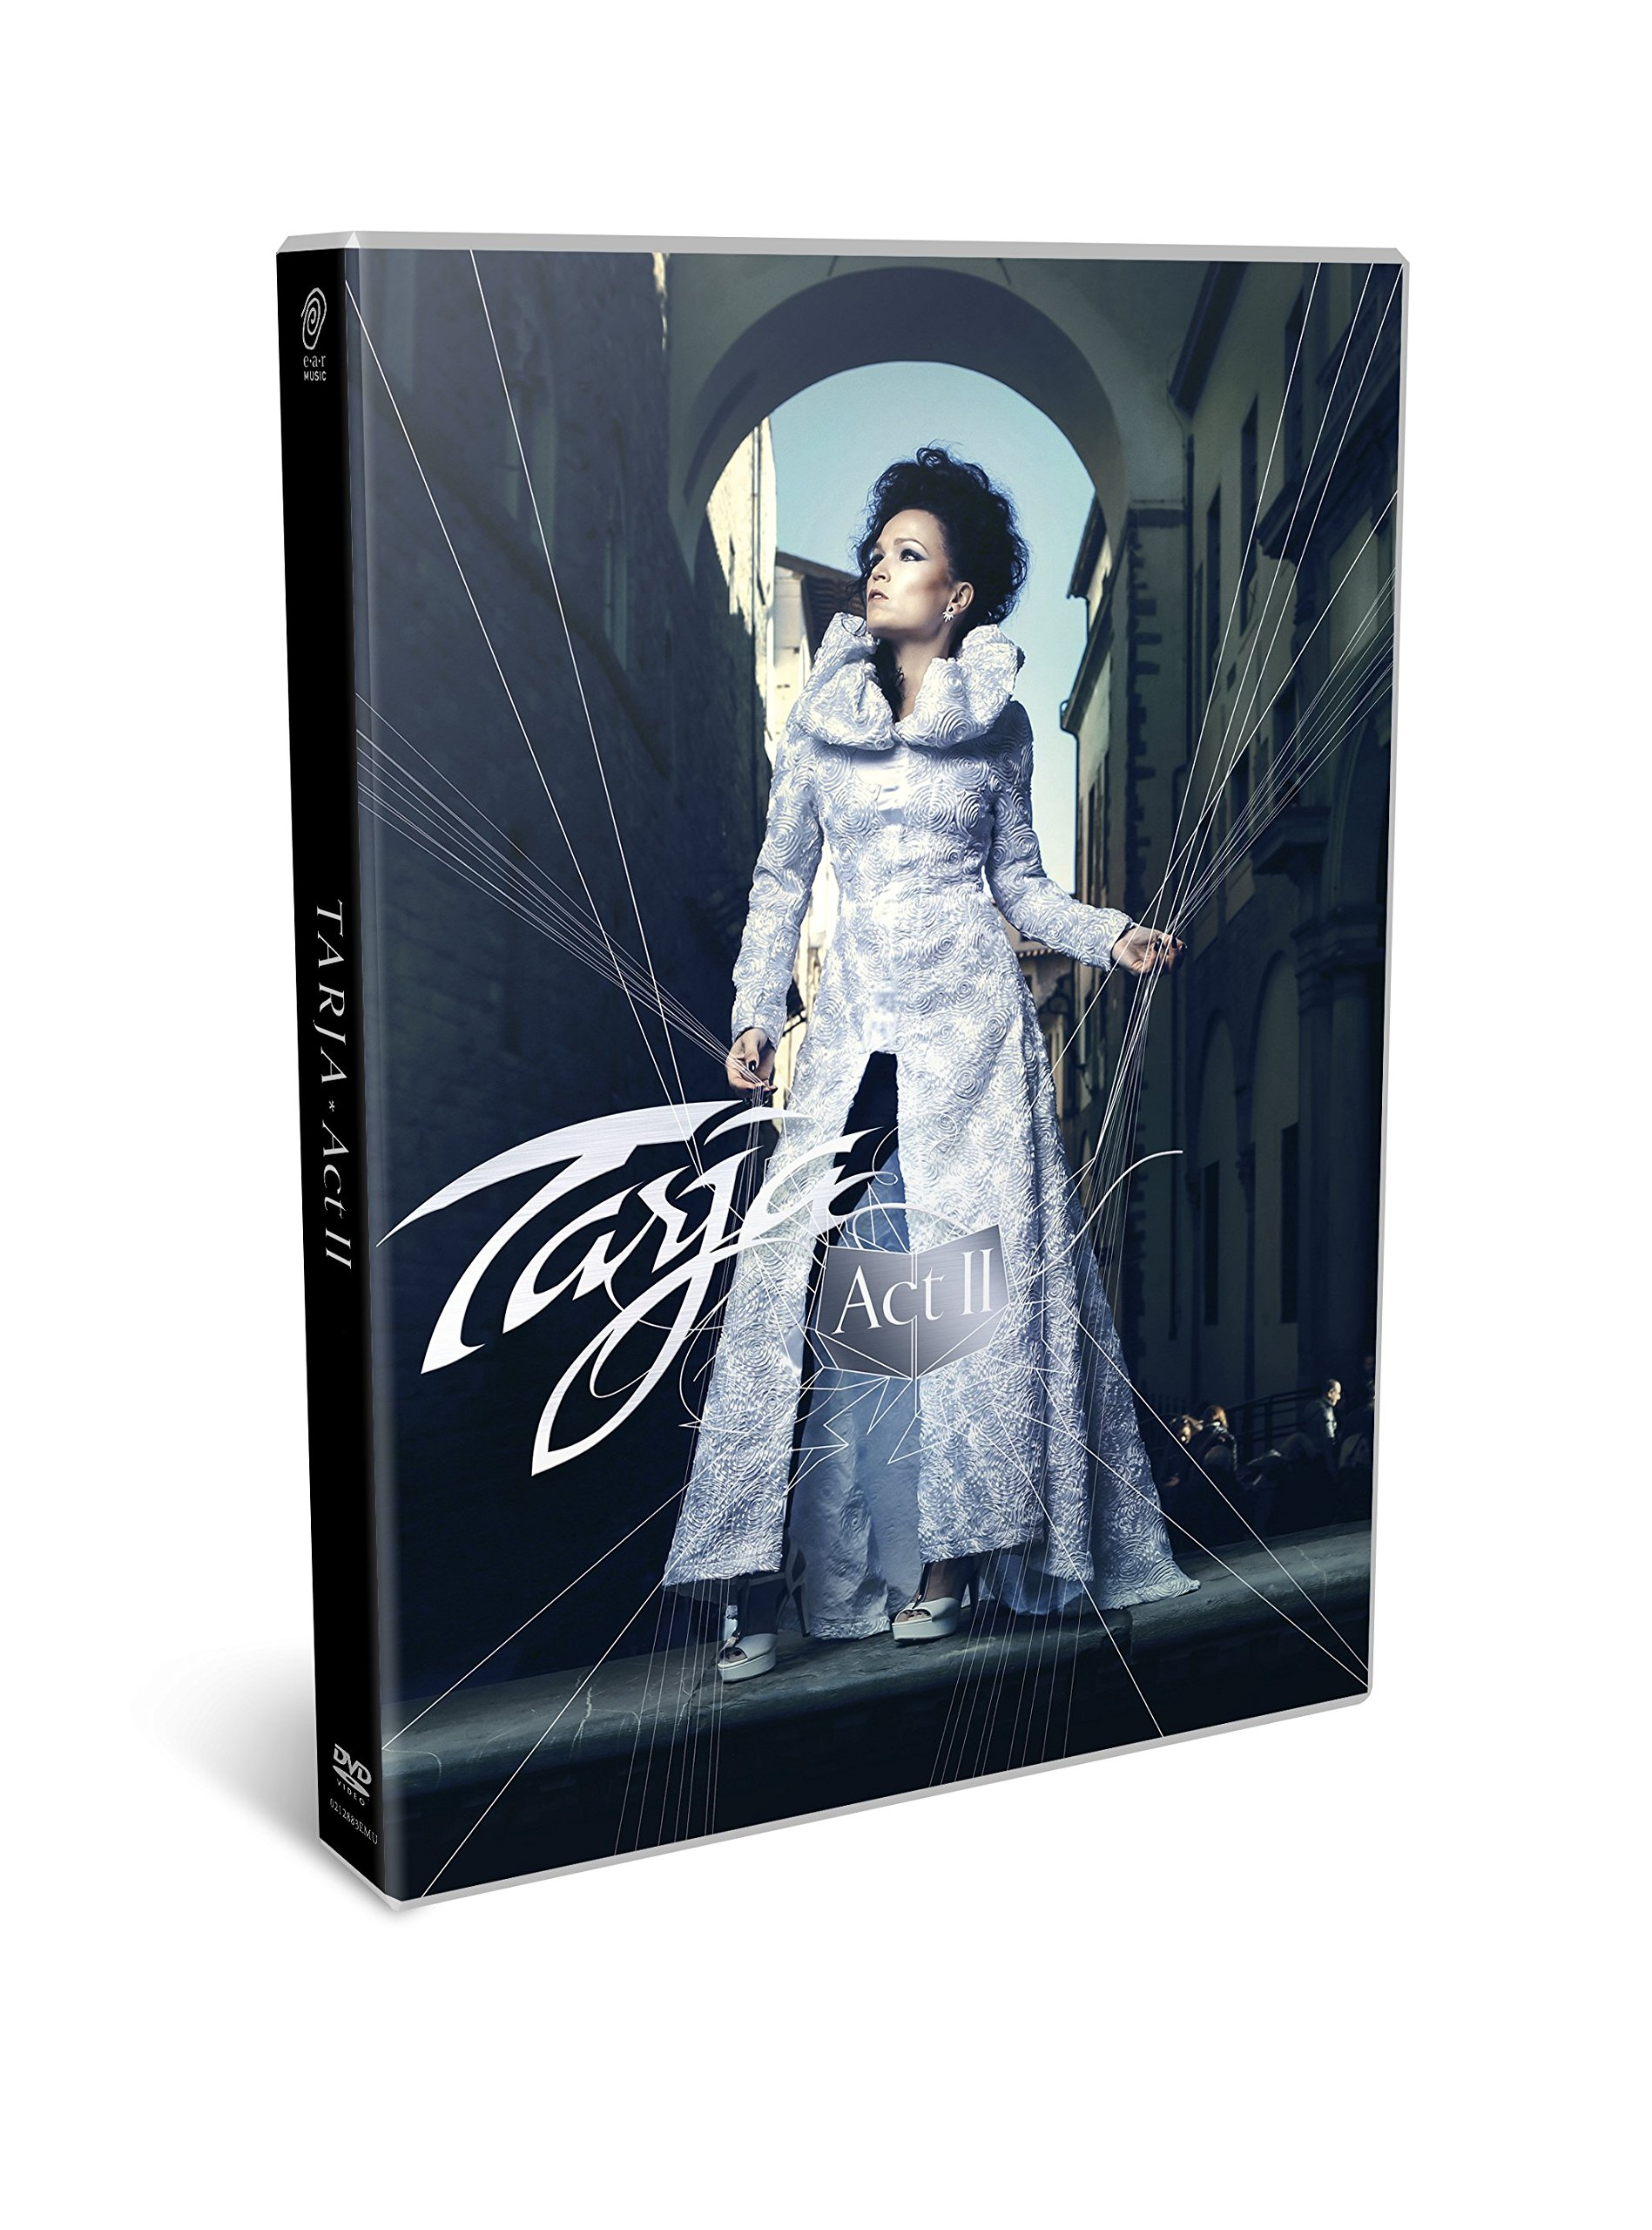 DVD : Act Ii (DVD)